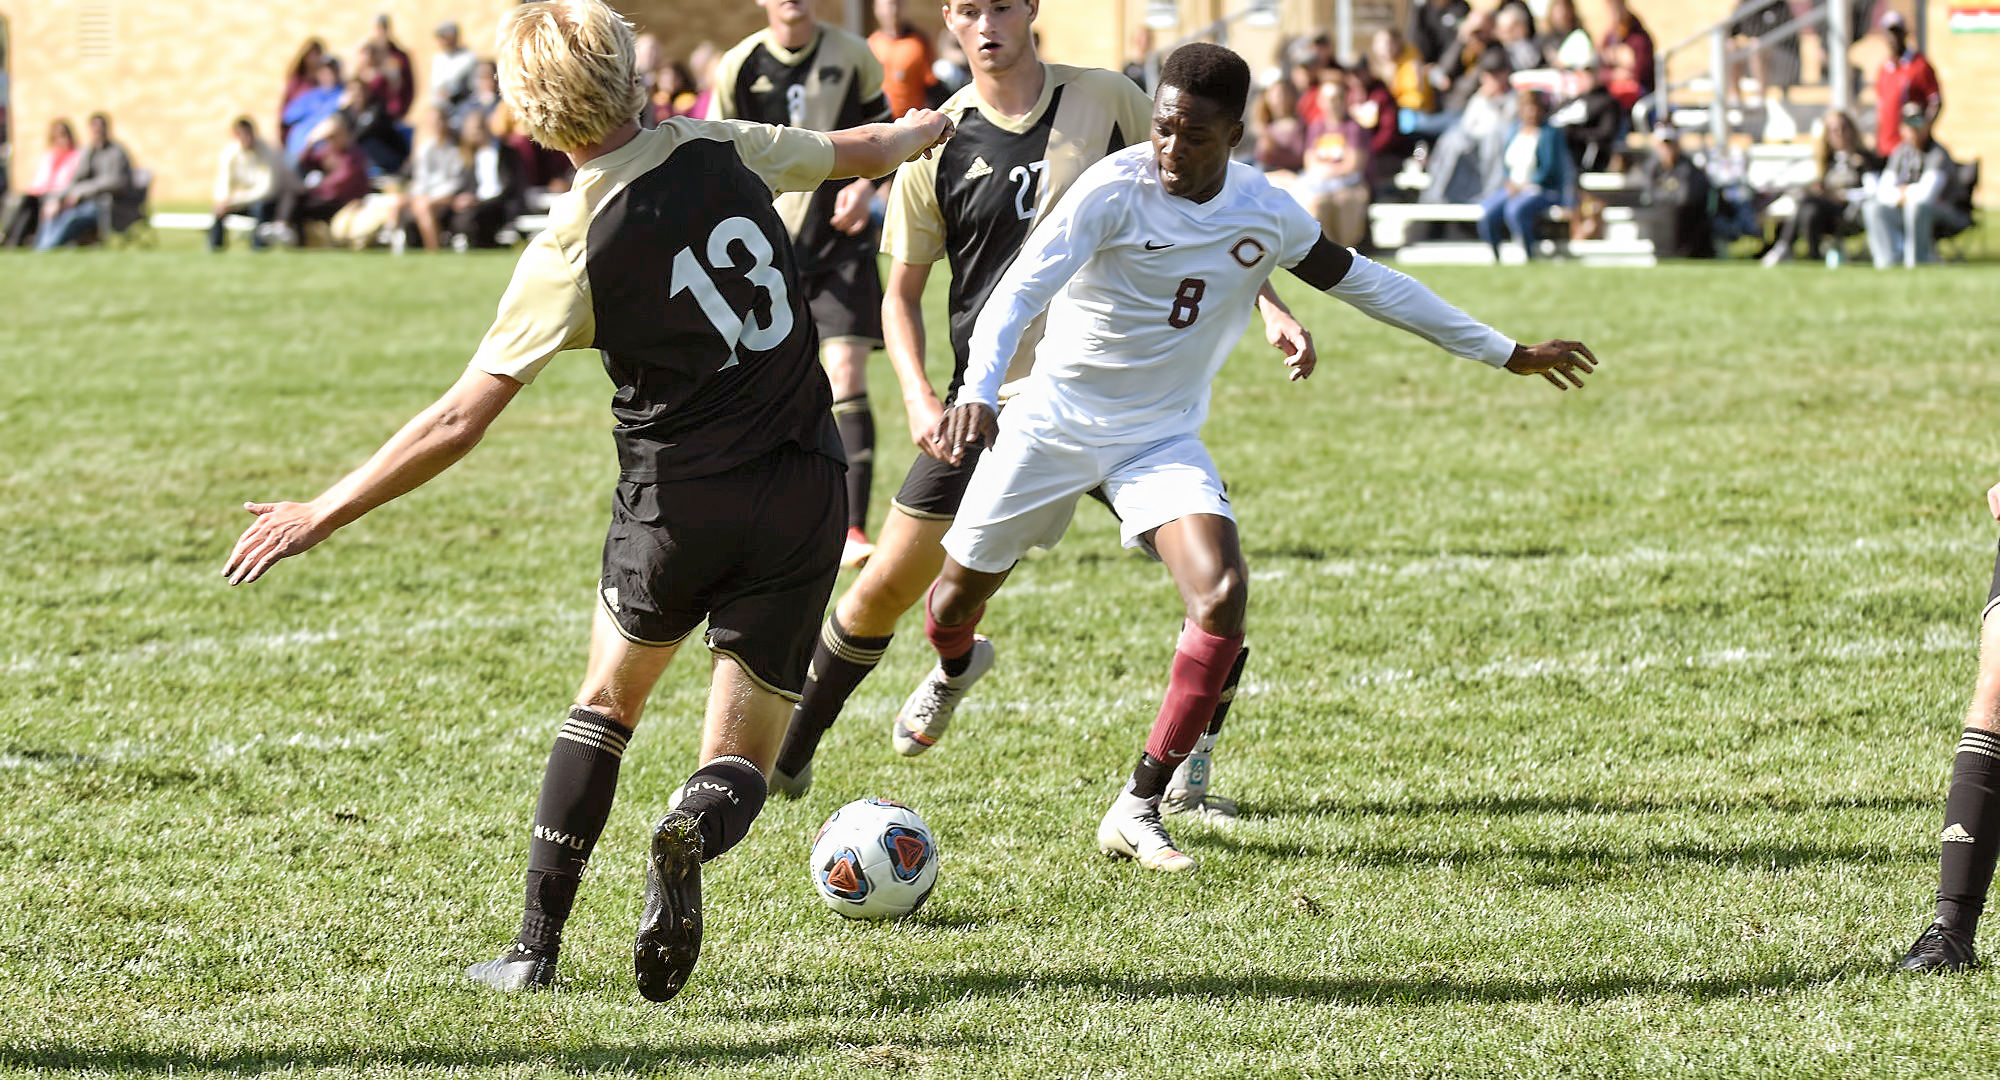 Senior Aronah Mukhtar set up the game-winning goal in the final game of his college career as Concordia beat St. Olaf 1-0 in 2OT.